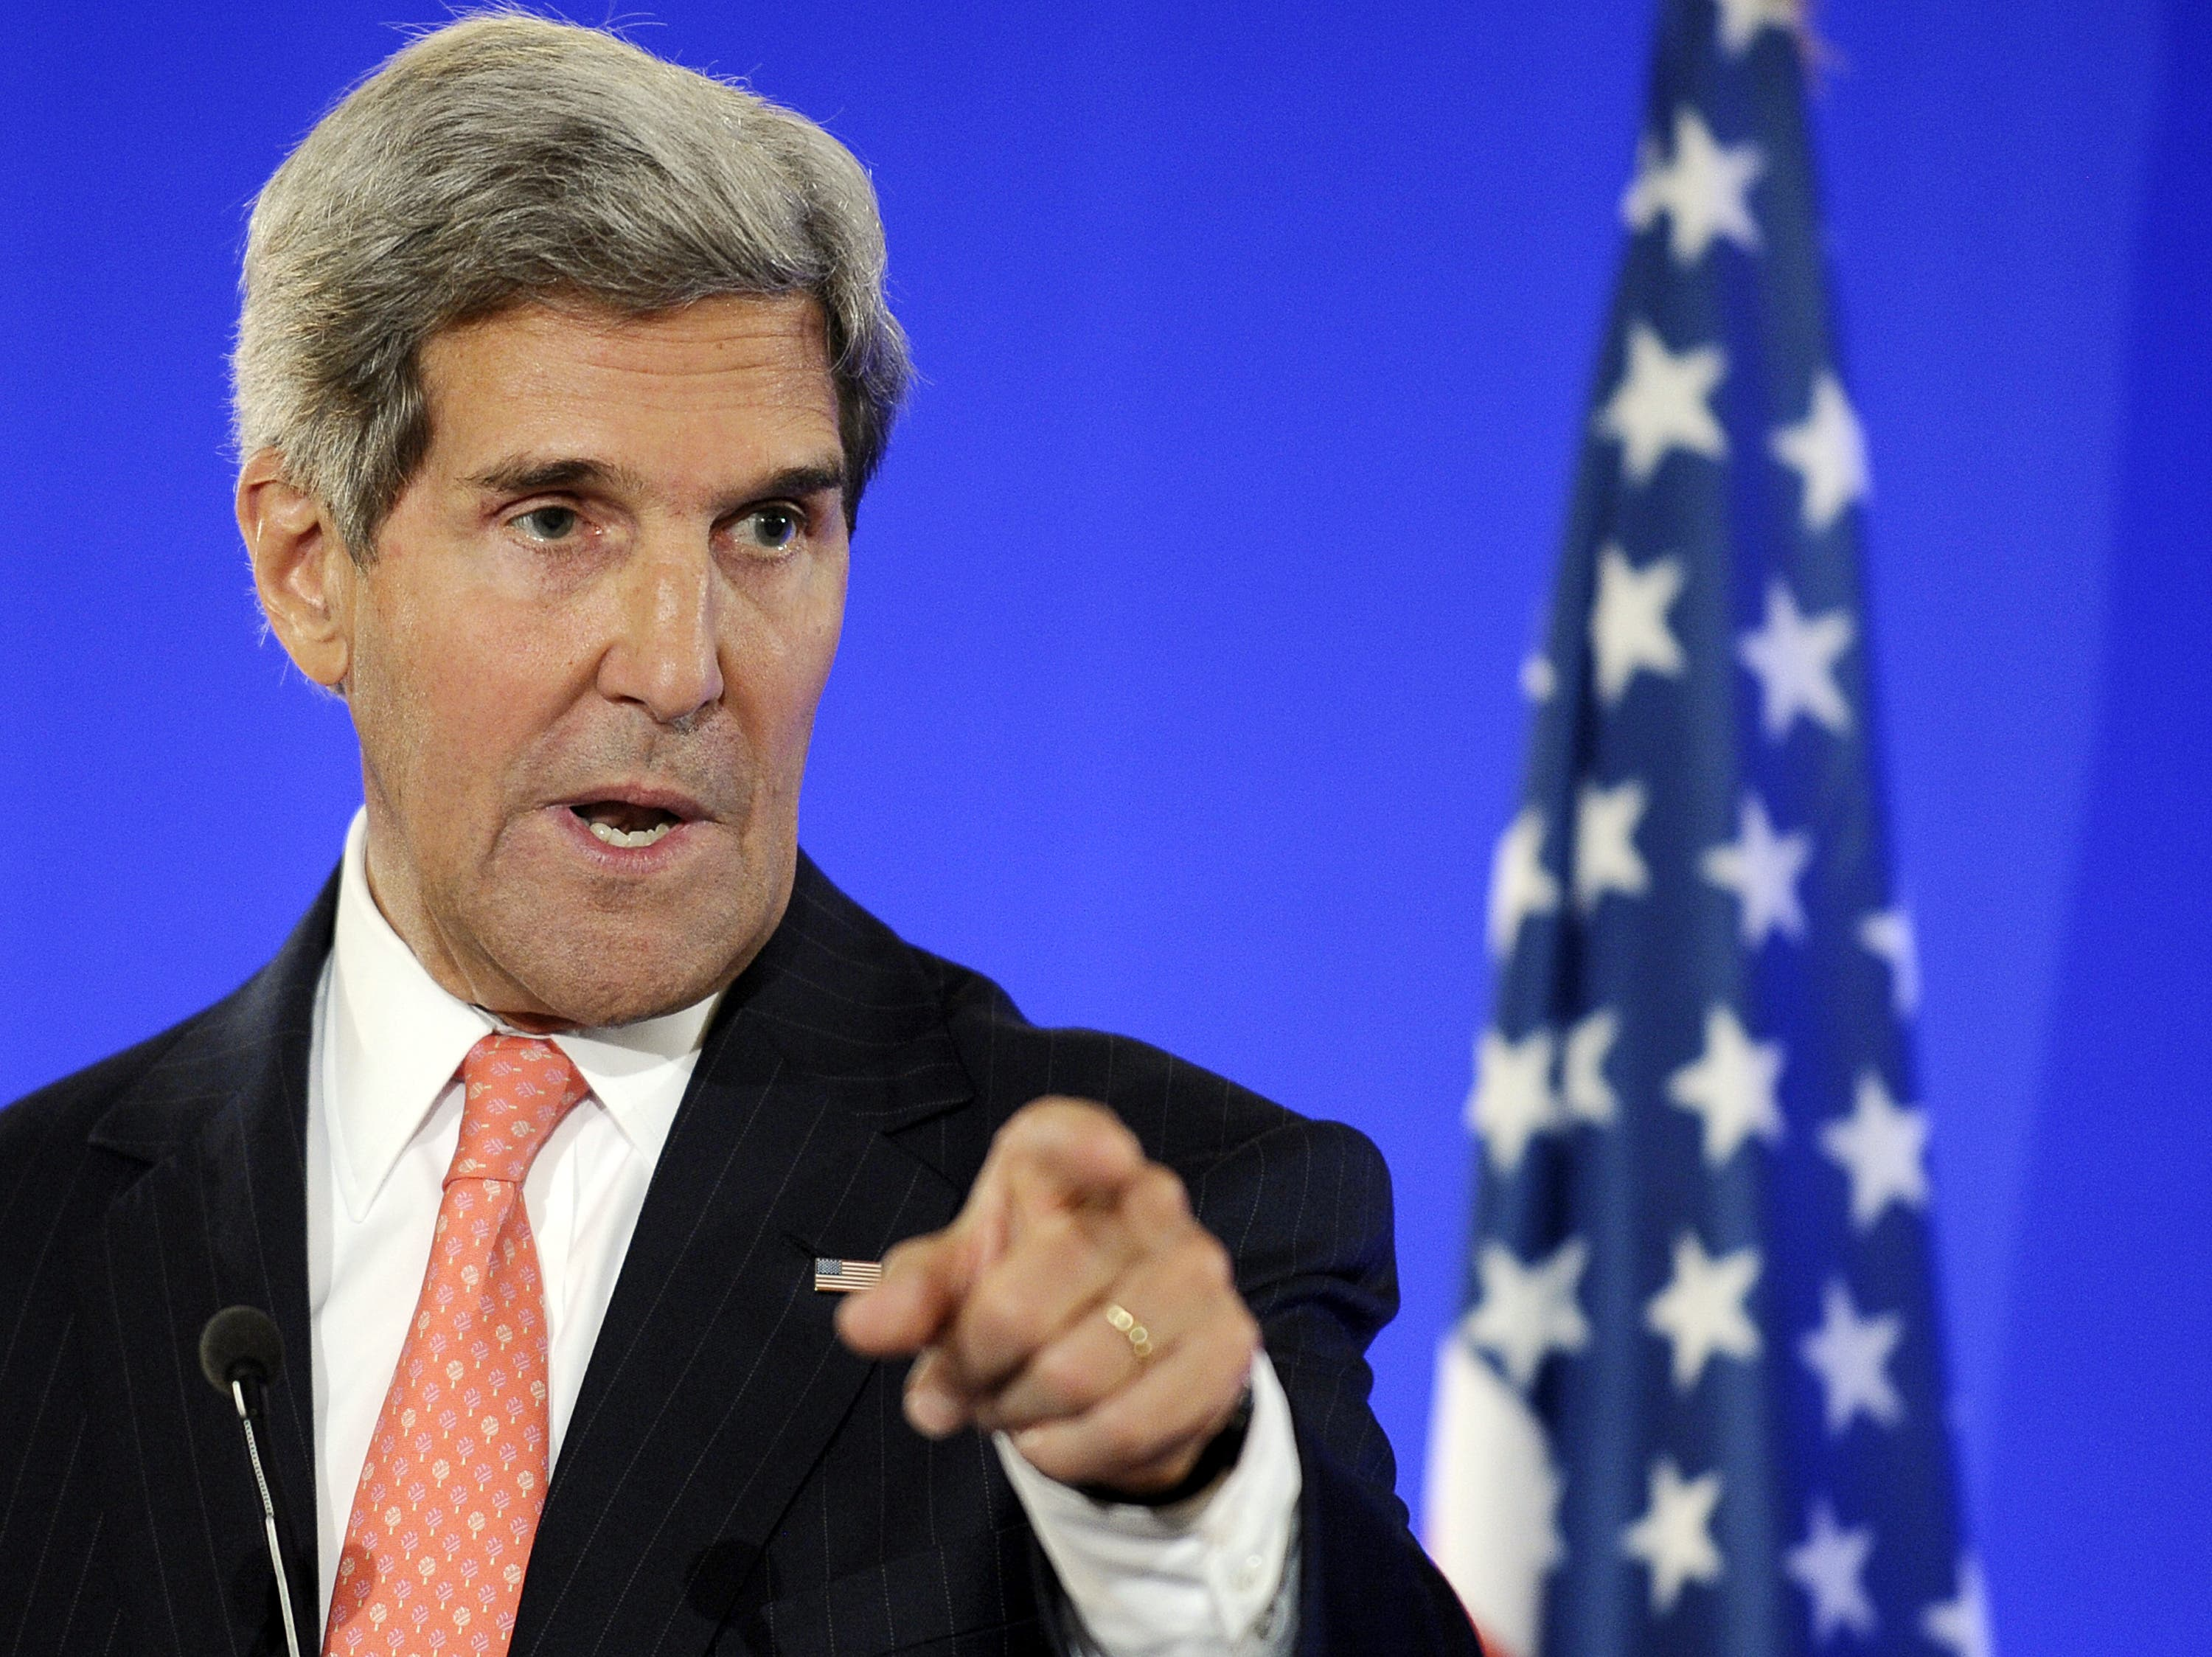 Israel defence minister Moshe Yaalon has apologized to John Kerry. (AFP)